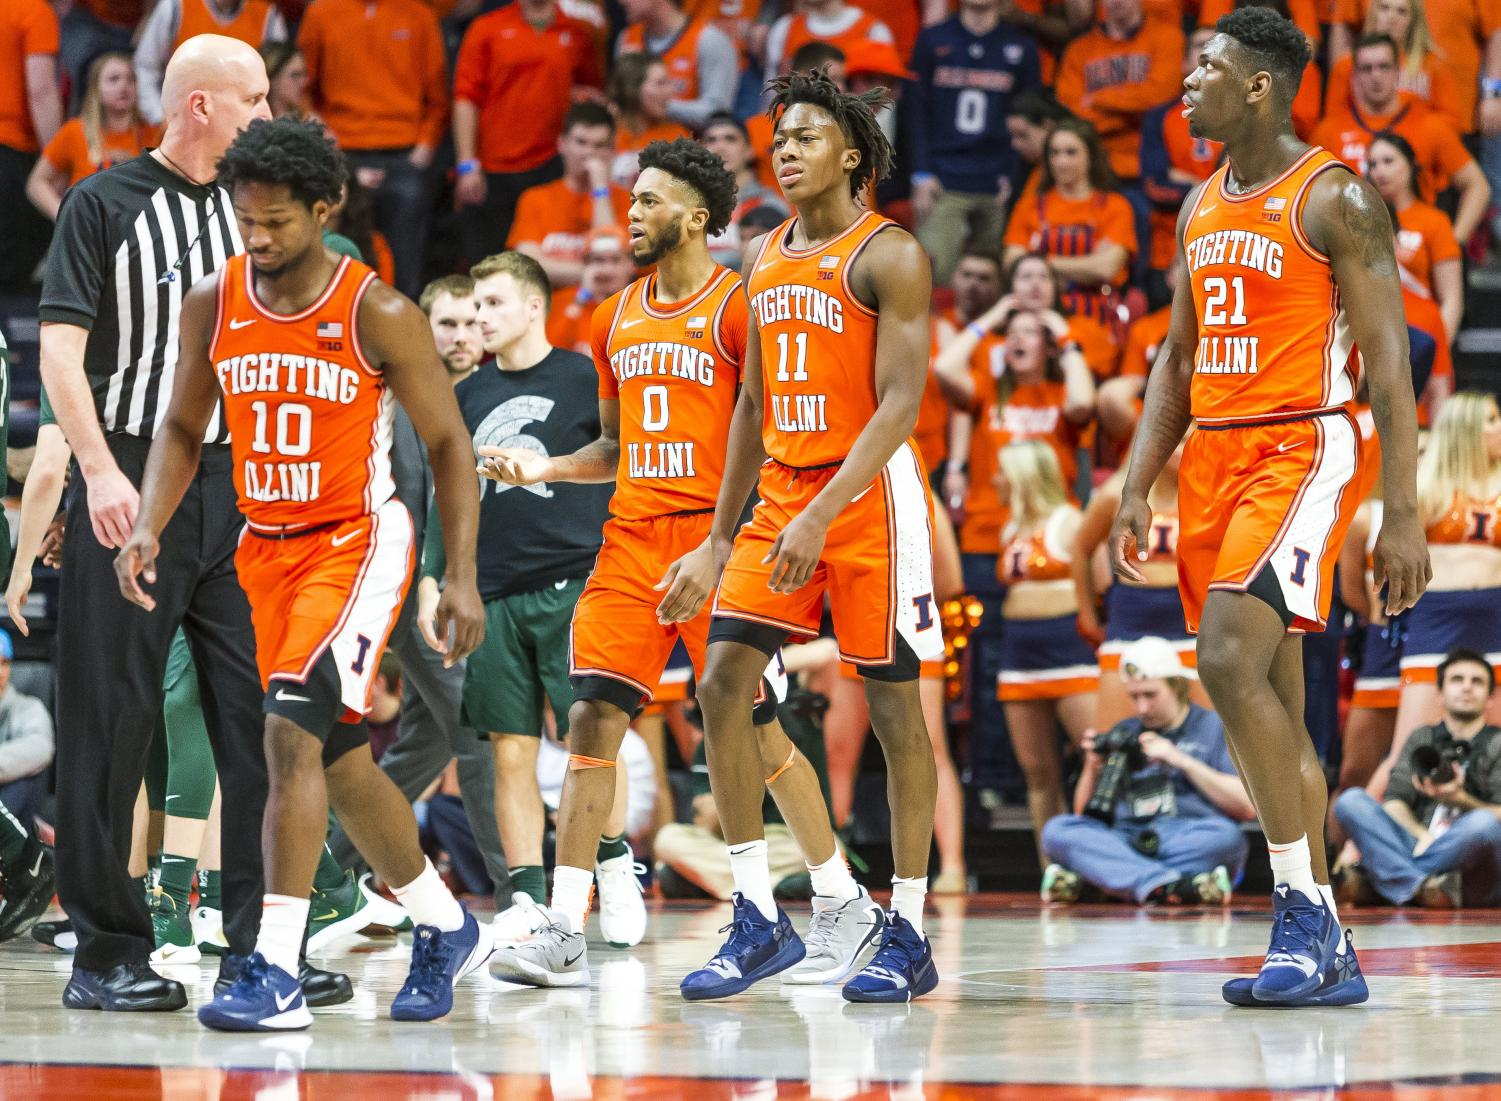 Illini sophomore guard Ayo Dosunmu (11), freshman center Kofi Cockburn (21), sophomore guard Alan Griffin (0), and senior guard Andres Feliz (10) head to the bench for a timeout during the second half at State Farm Center on Feb. 11. Illinois travels to New Jersey Saturday to face Rutgers.